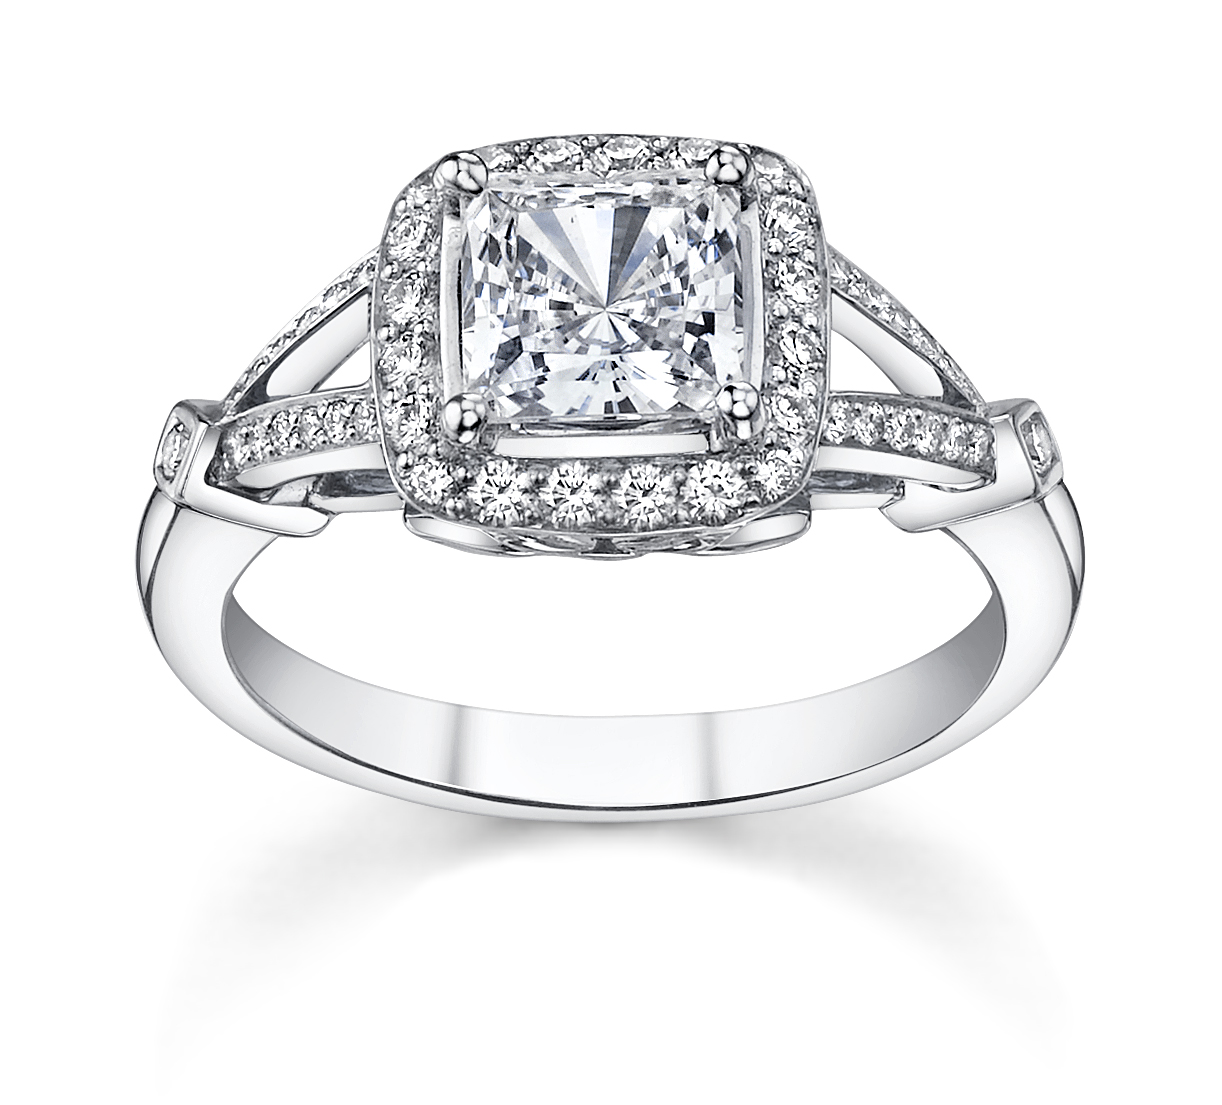 bridget diamond engagement ring at robbins brothers